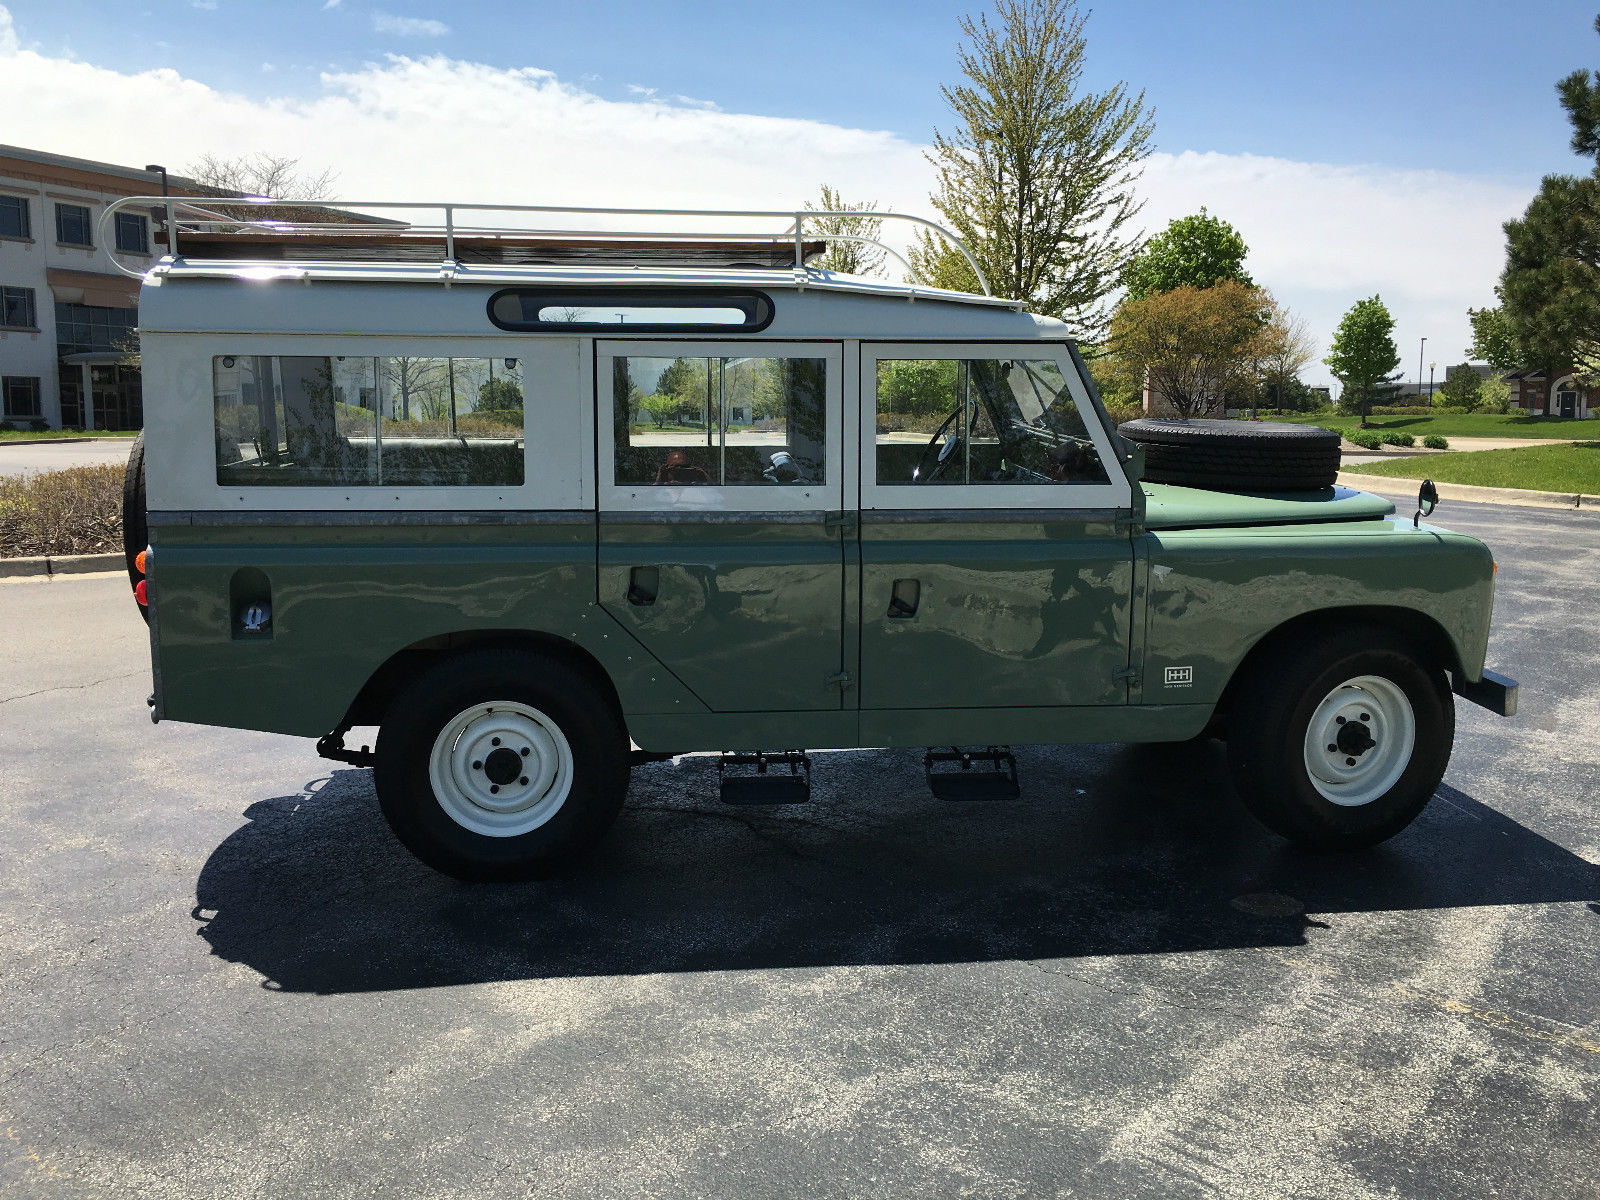 HHH Heritage – 1965 Land Rover Series llA 109